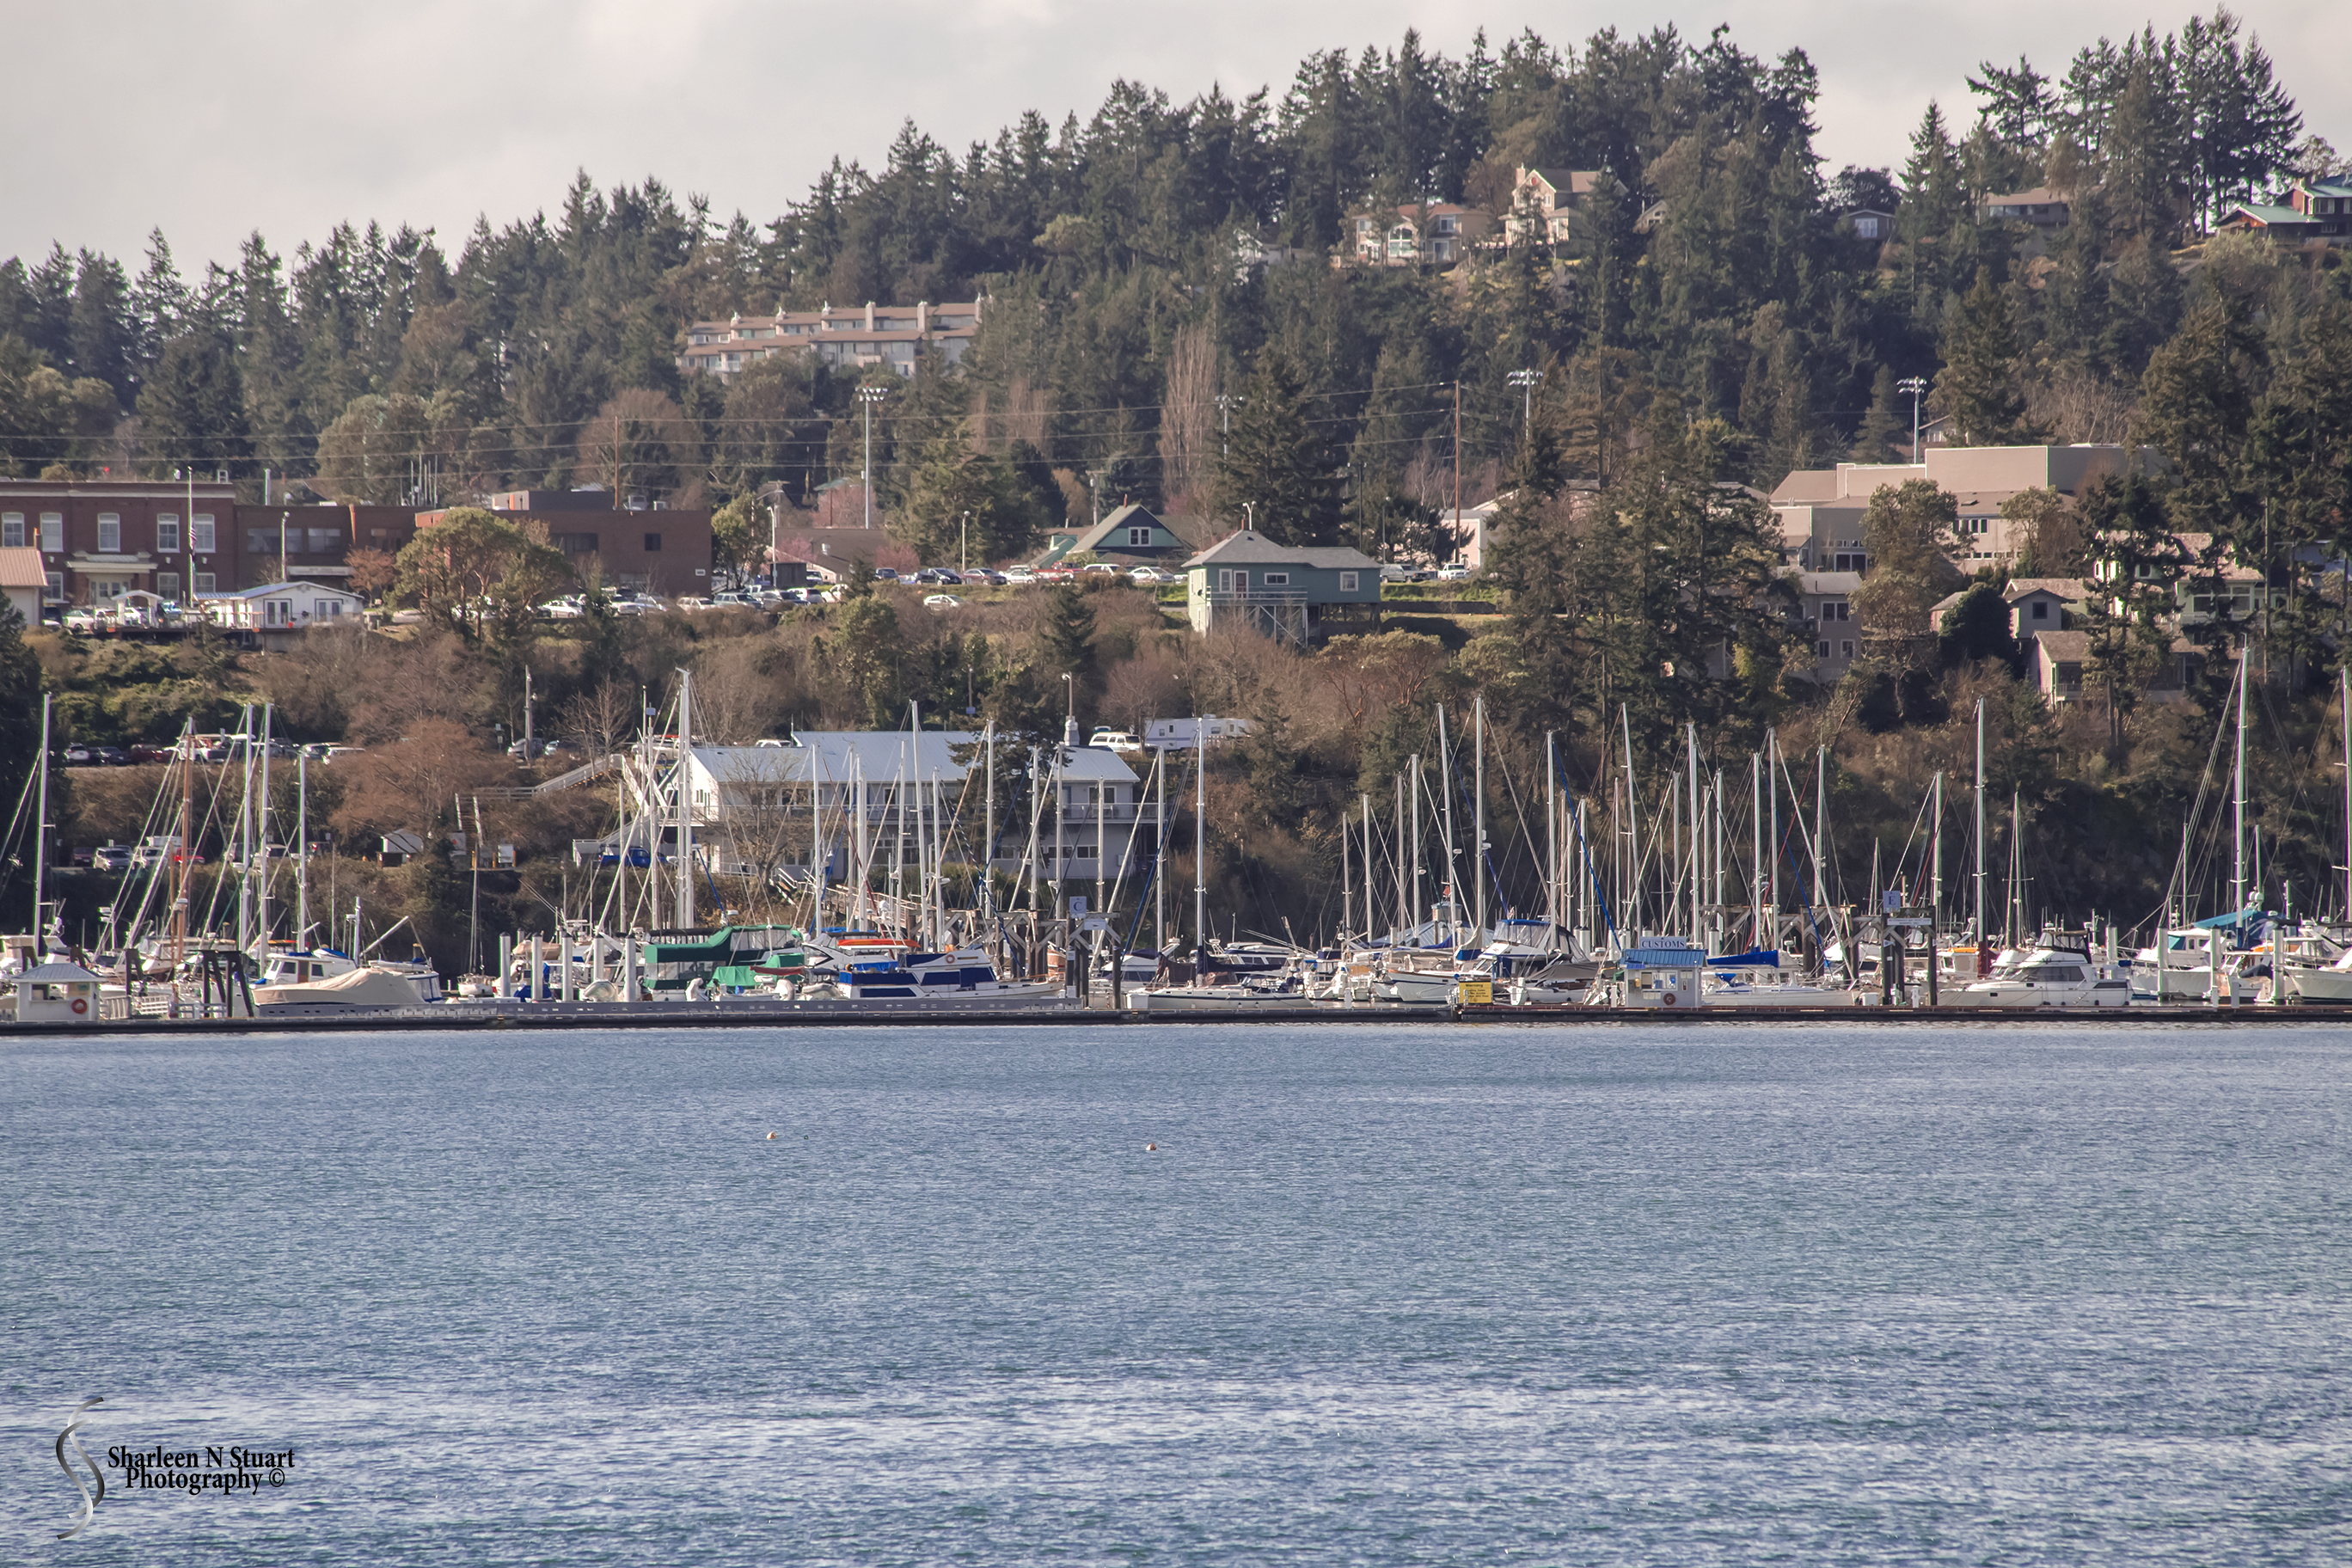 After about 2.5 hours of ferry boat riding through the beautiful Orcas Islands we have finally arrived in Friday Harbor.